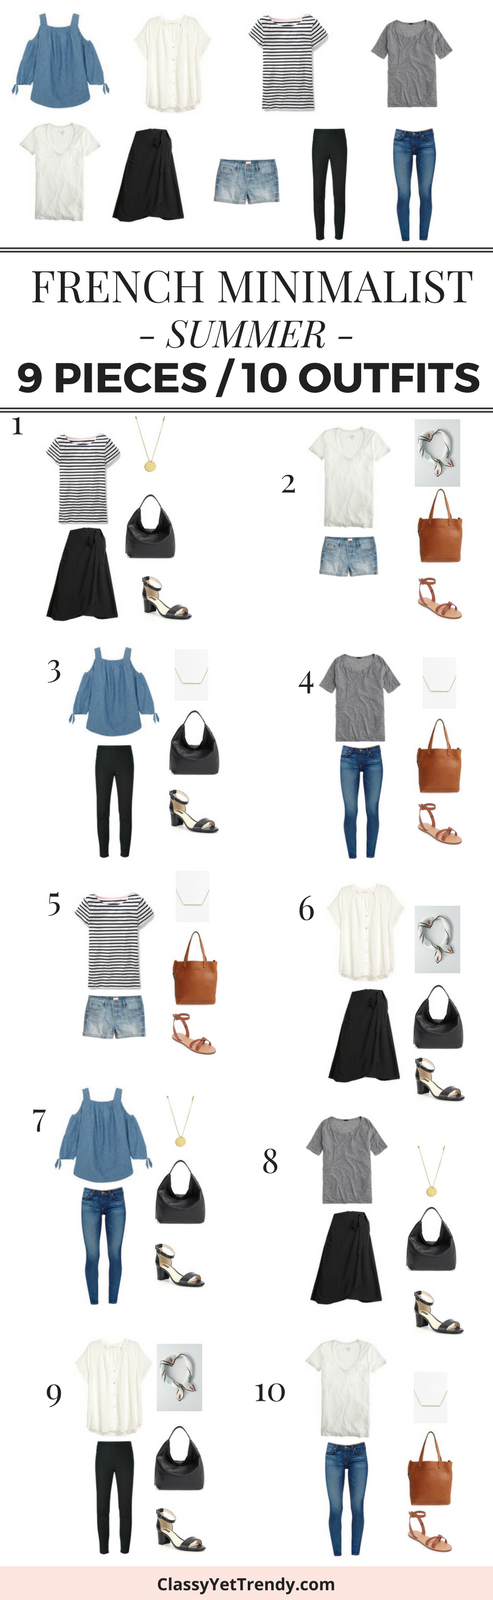 9 Pieces 10 Outfits - French Minimalist Summer